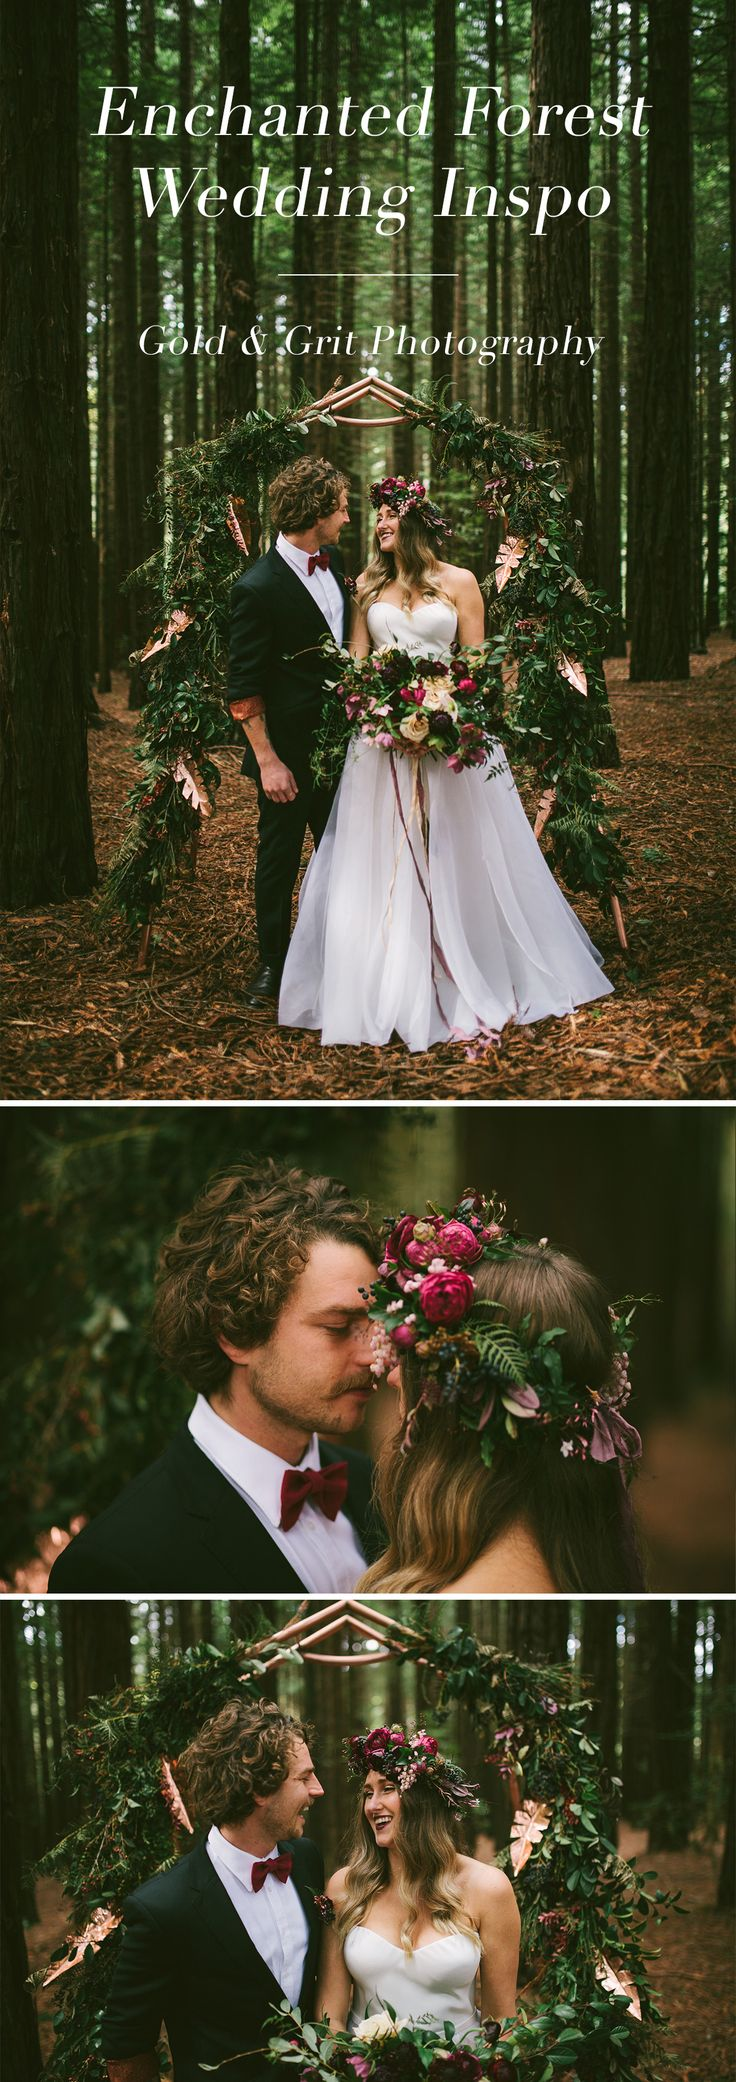 Redwood forest bohemian wedding inspiration with floral copper arch, flower crown and wild, organic flowers